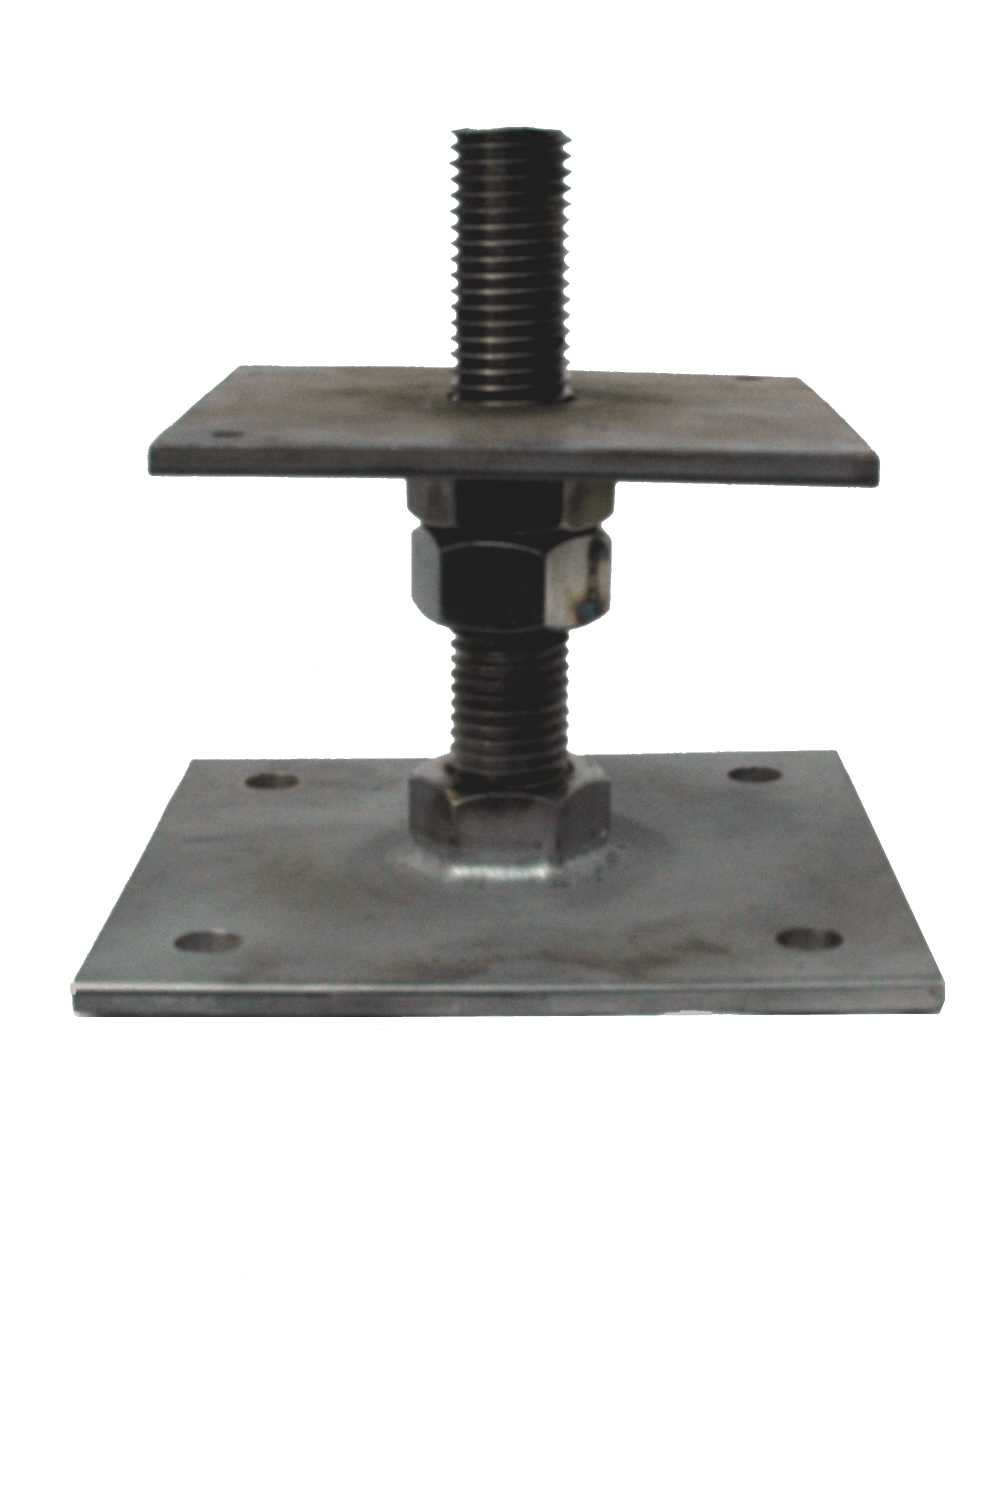 Stainless Steel adjustable post base, 150mm high, post plate size 150mm x 150mm SSB1P3